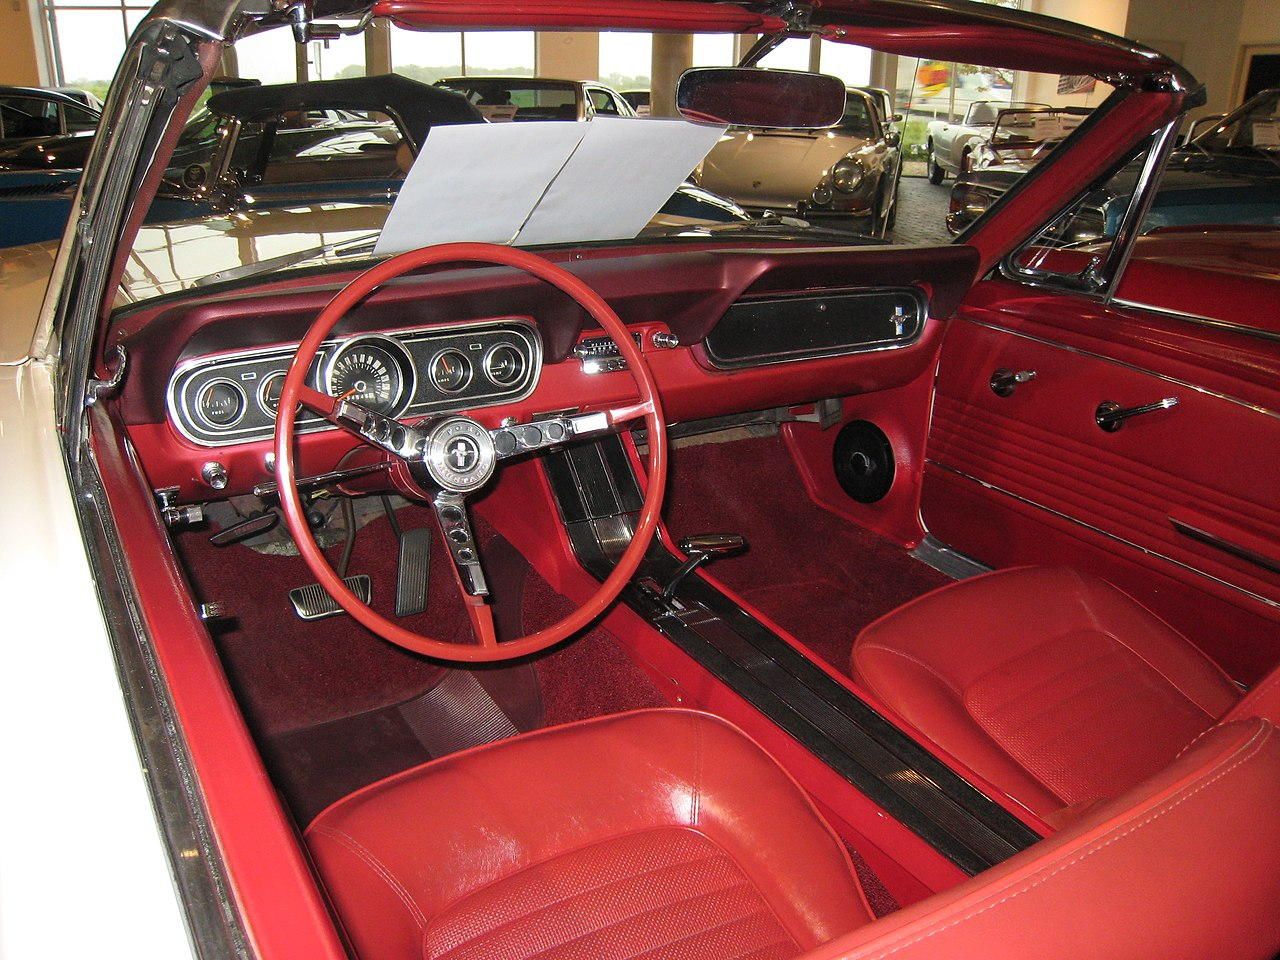 file 1966 ford mustang convertible interior jpg wikimedia commons